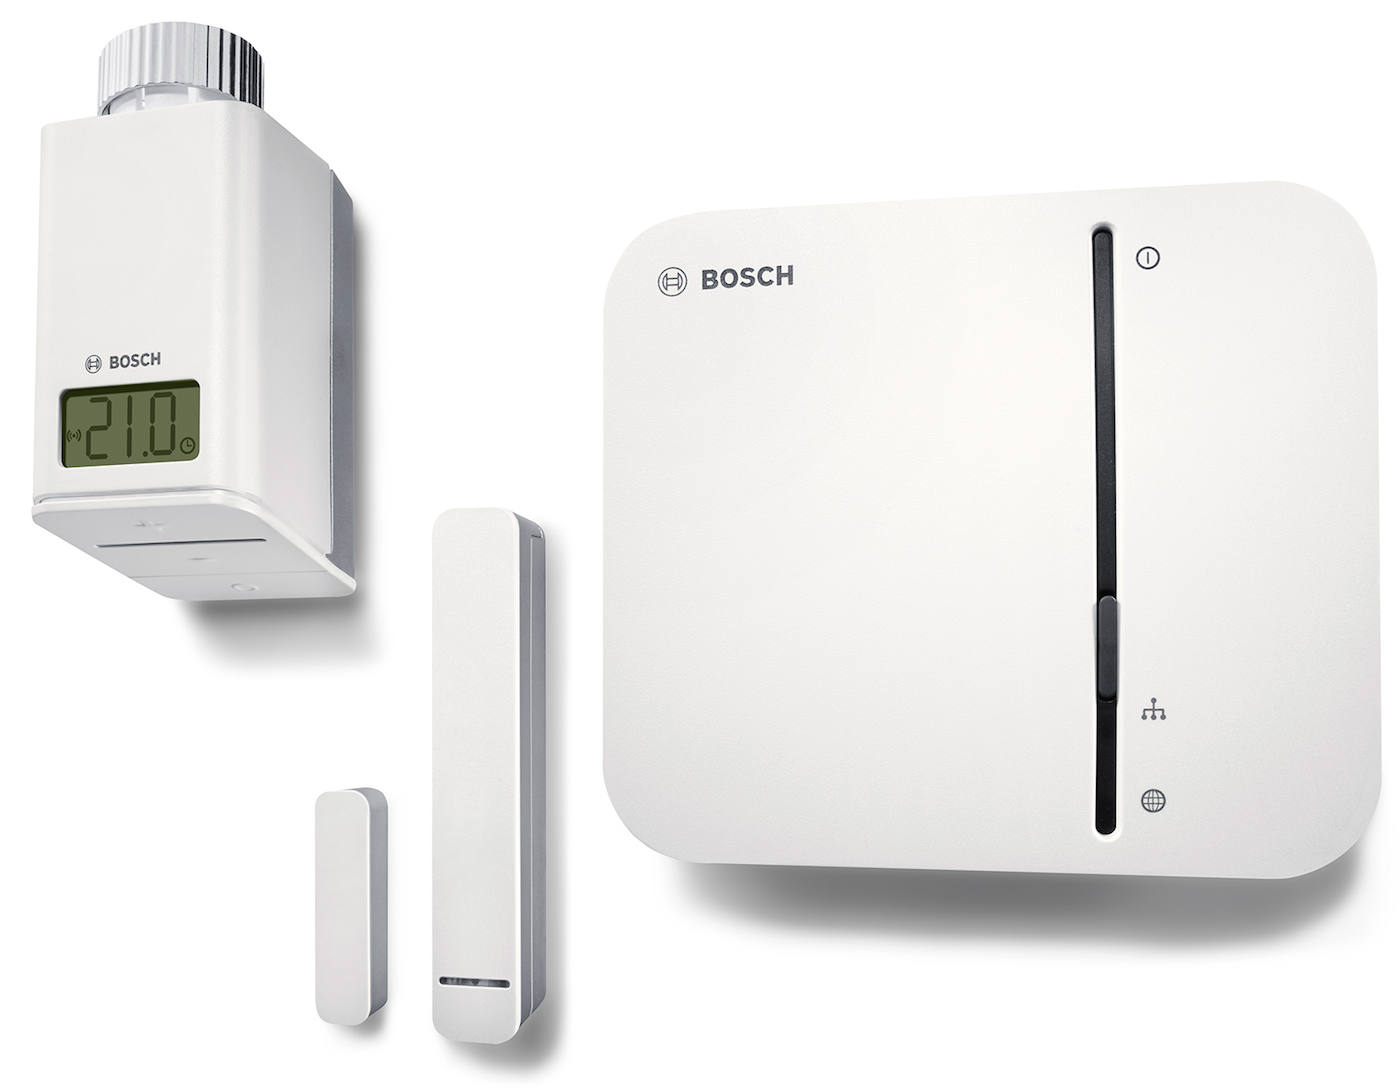 Bosch is building its own Internet of Things cloud network